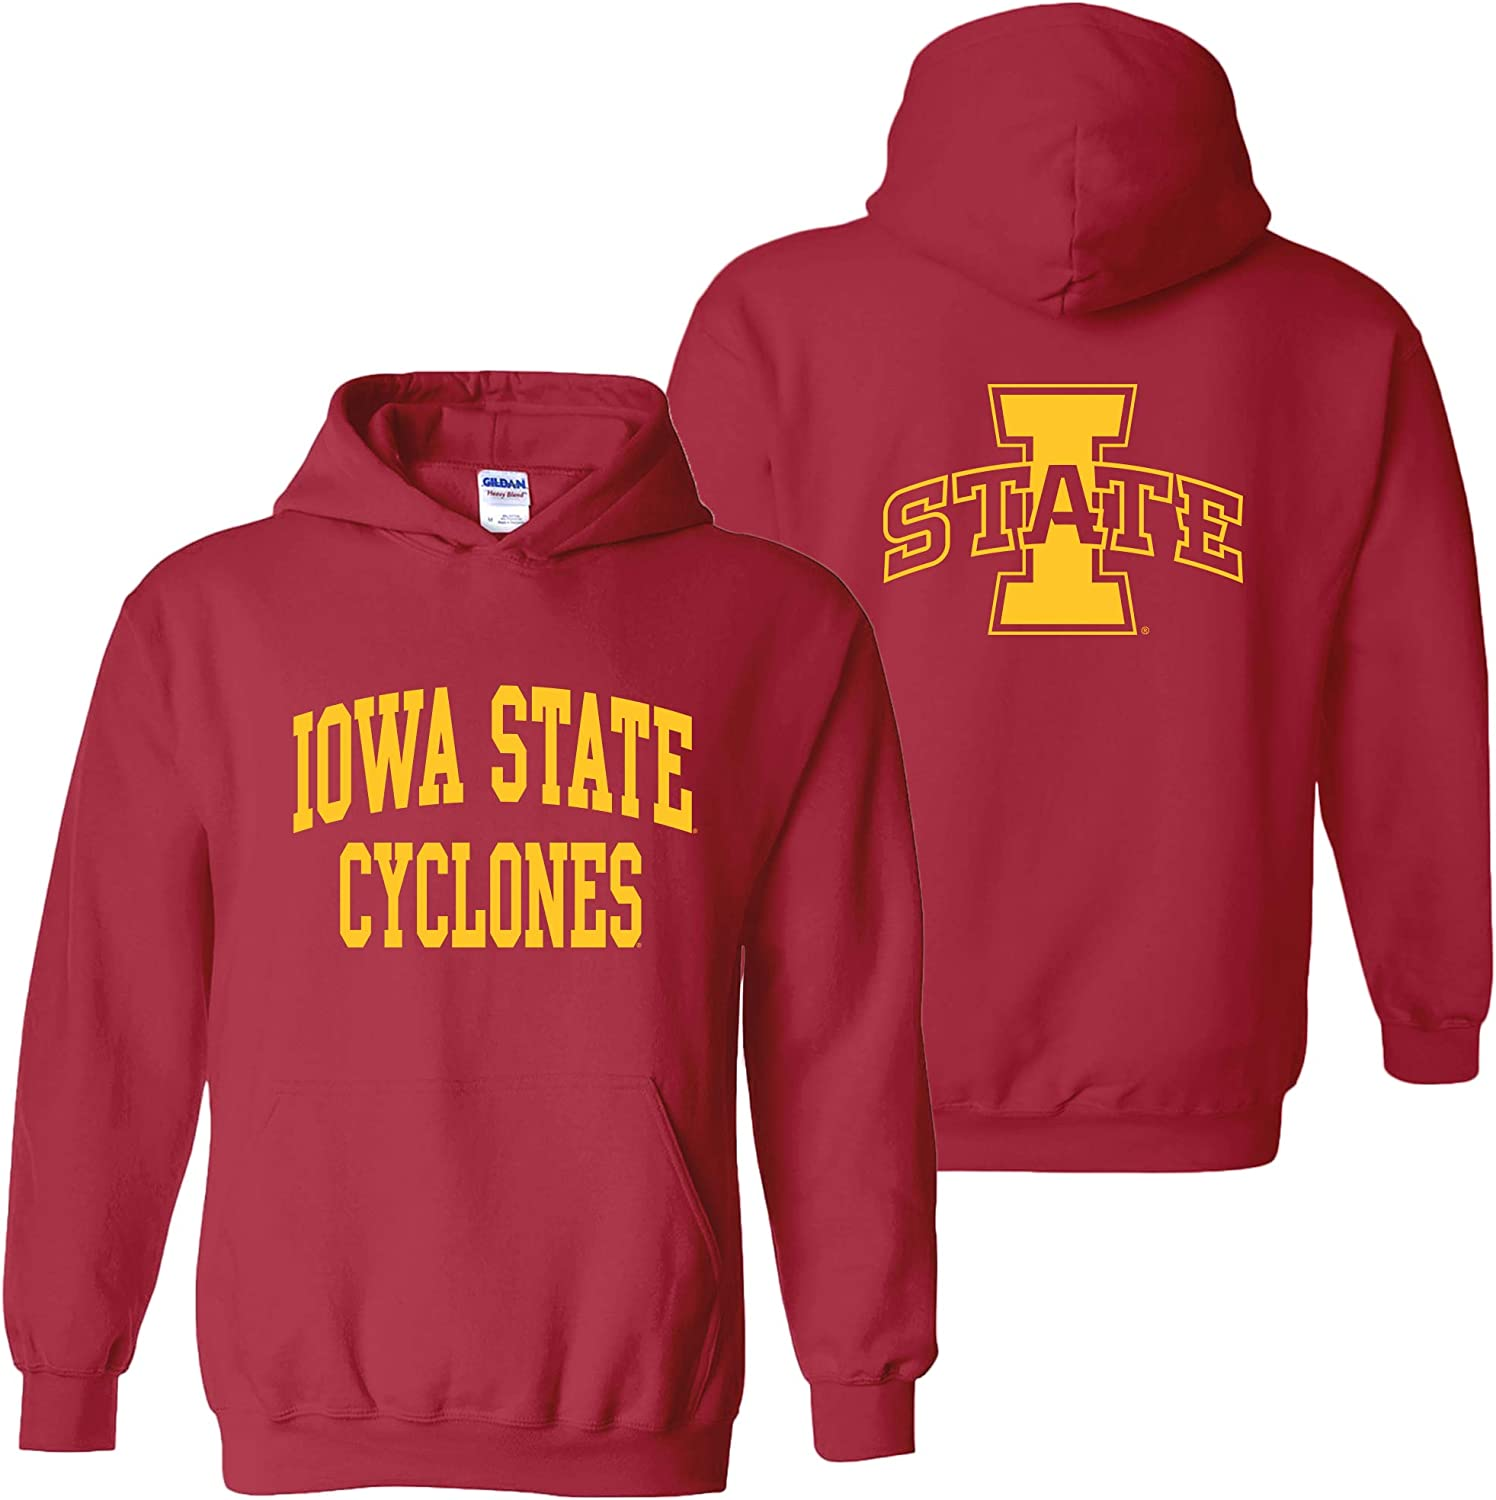 Shop from 1000 unique NCAA Front and Back Print Team Color Hoodie College University